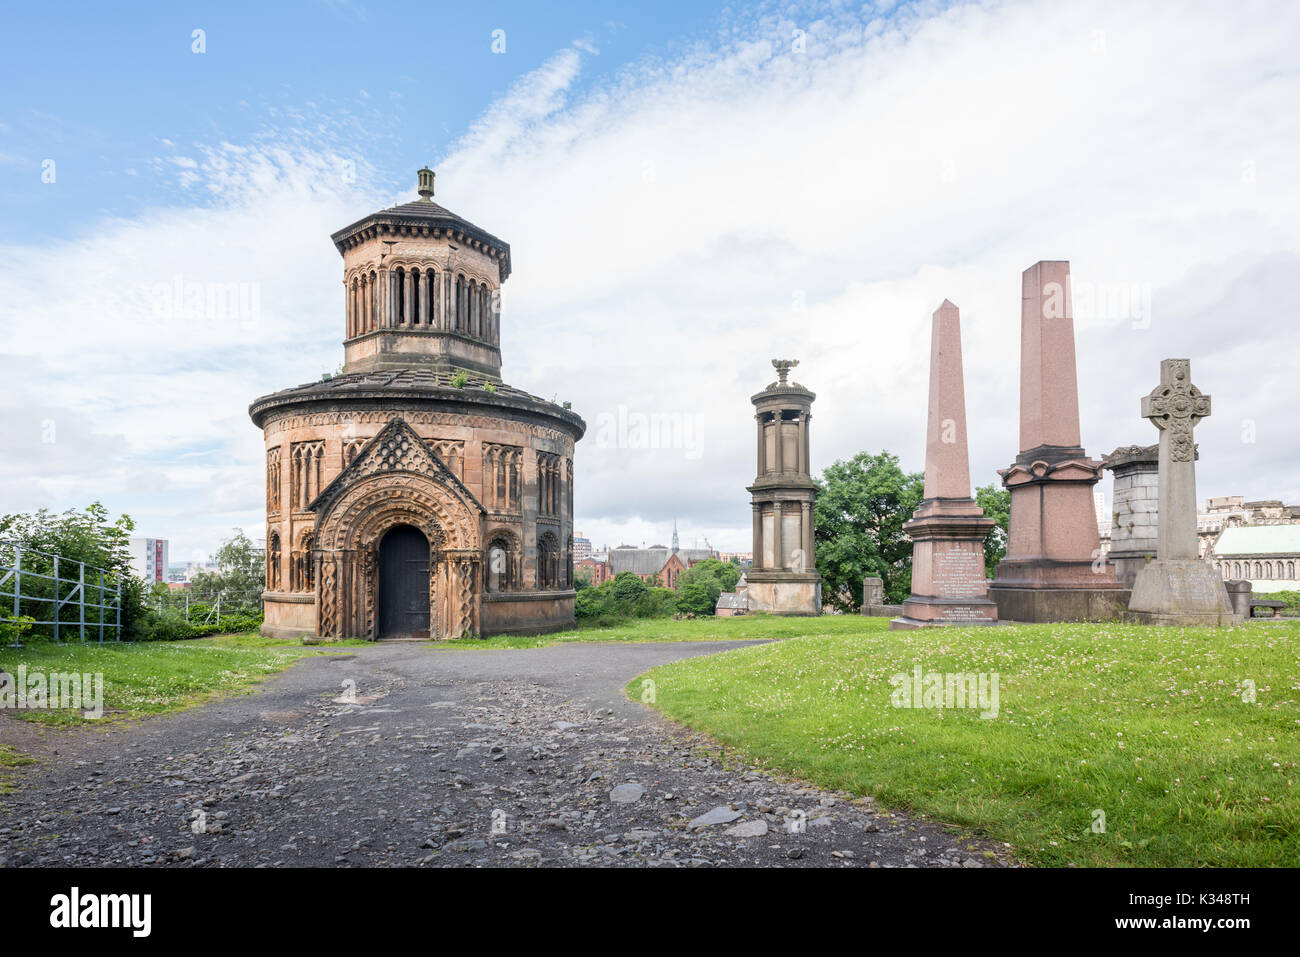 Glasgow Necropolis monuments grave - Stock Image